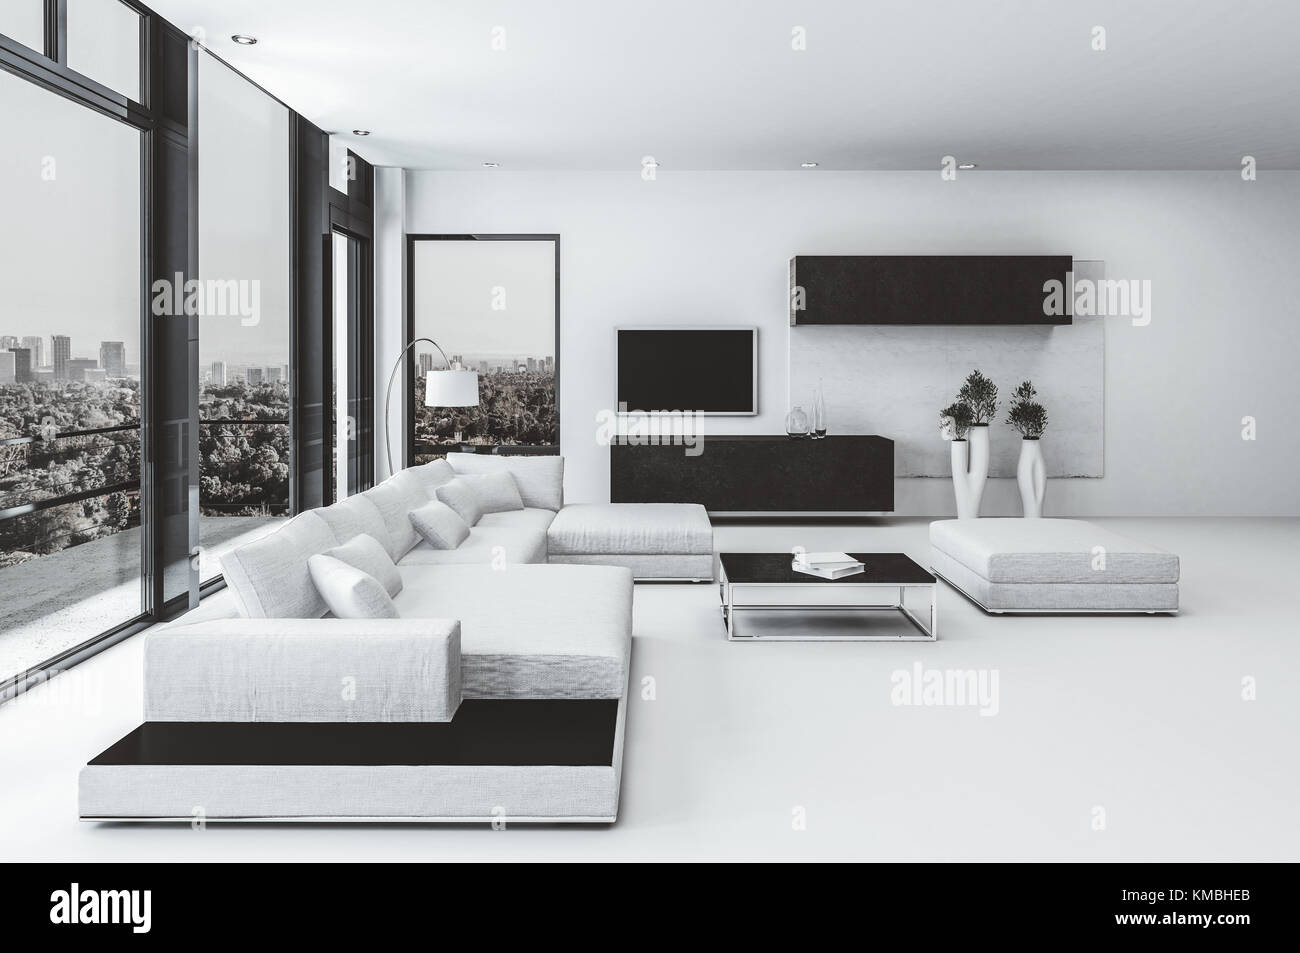 Contemporary luxury living room interior with black and white decor a modular lounge suite and large windows overlooking a city with a door to an out